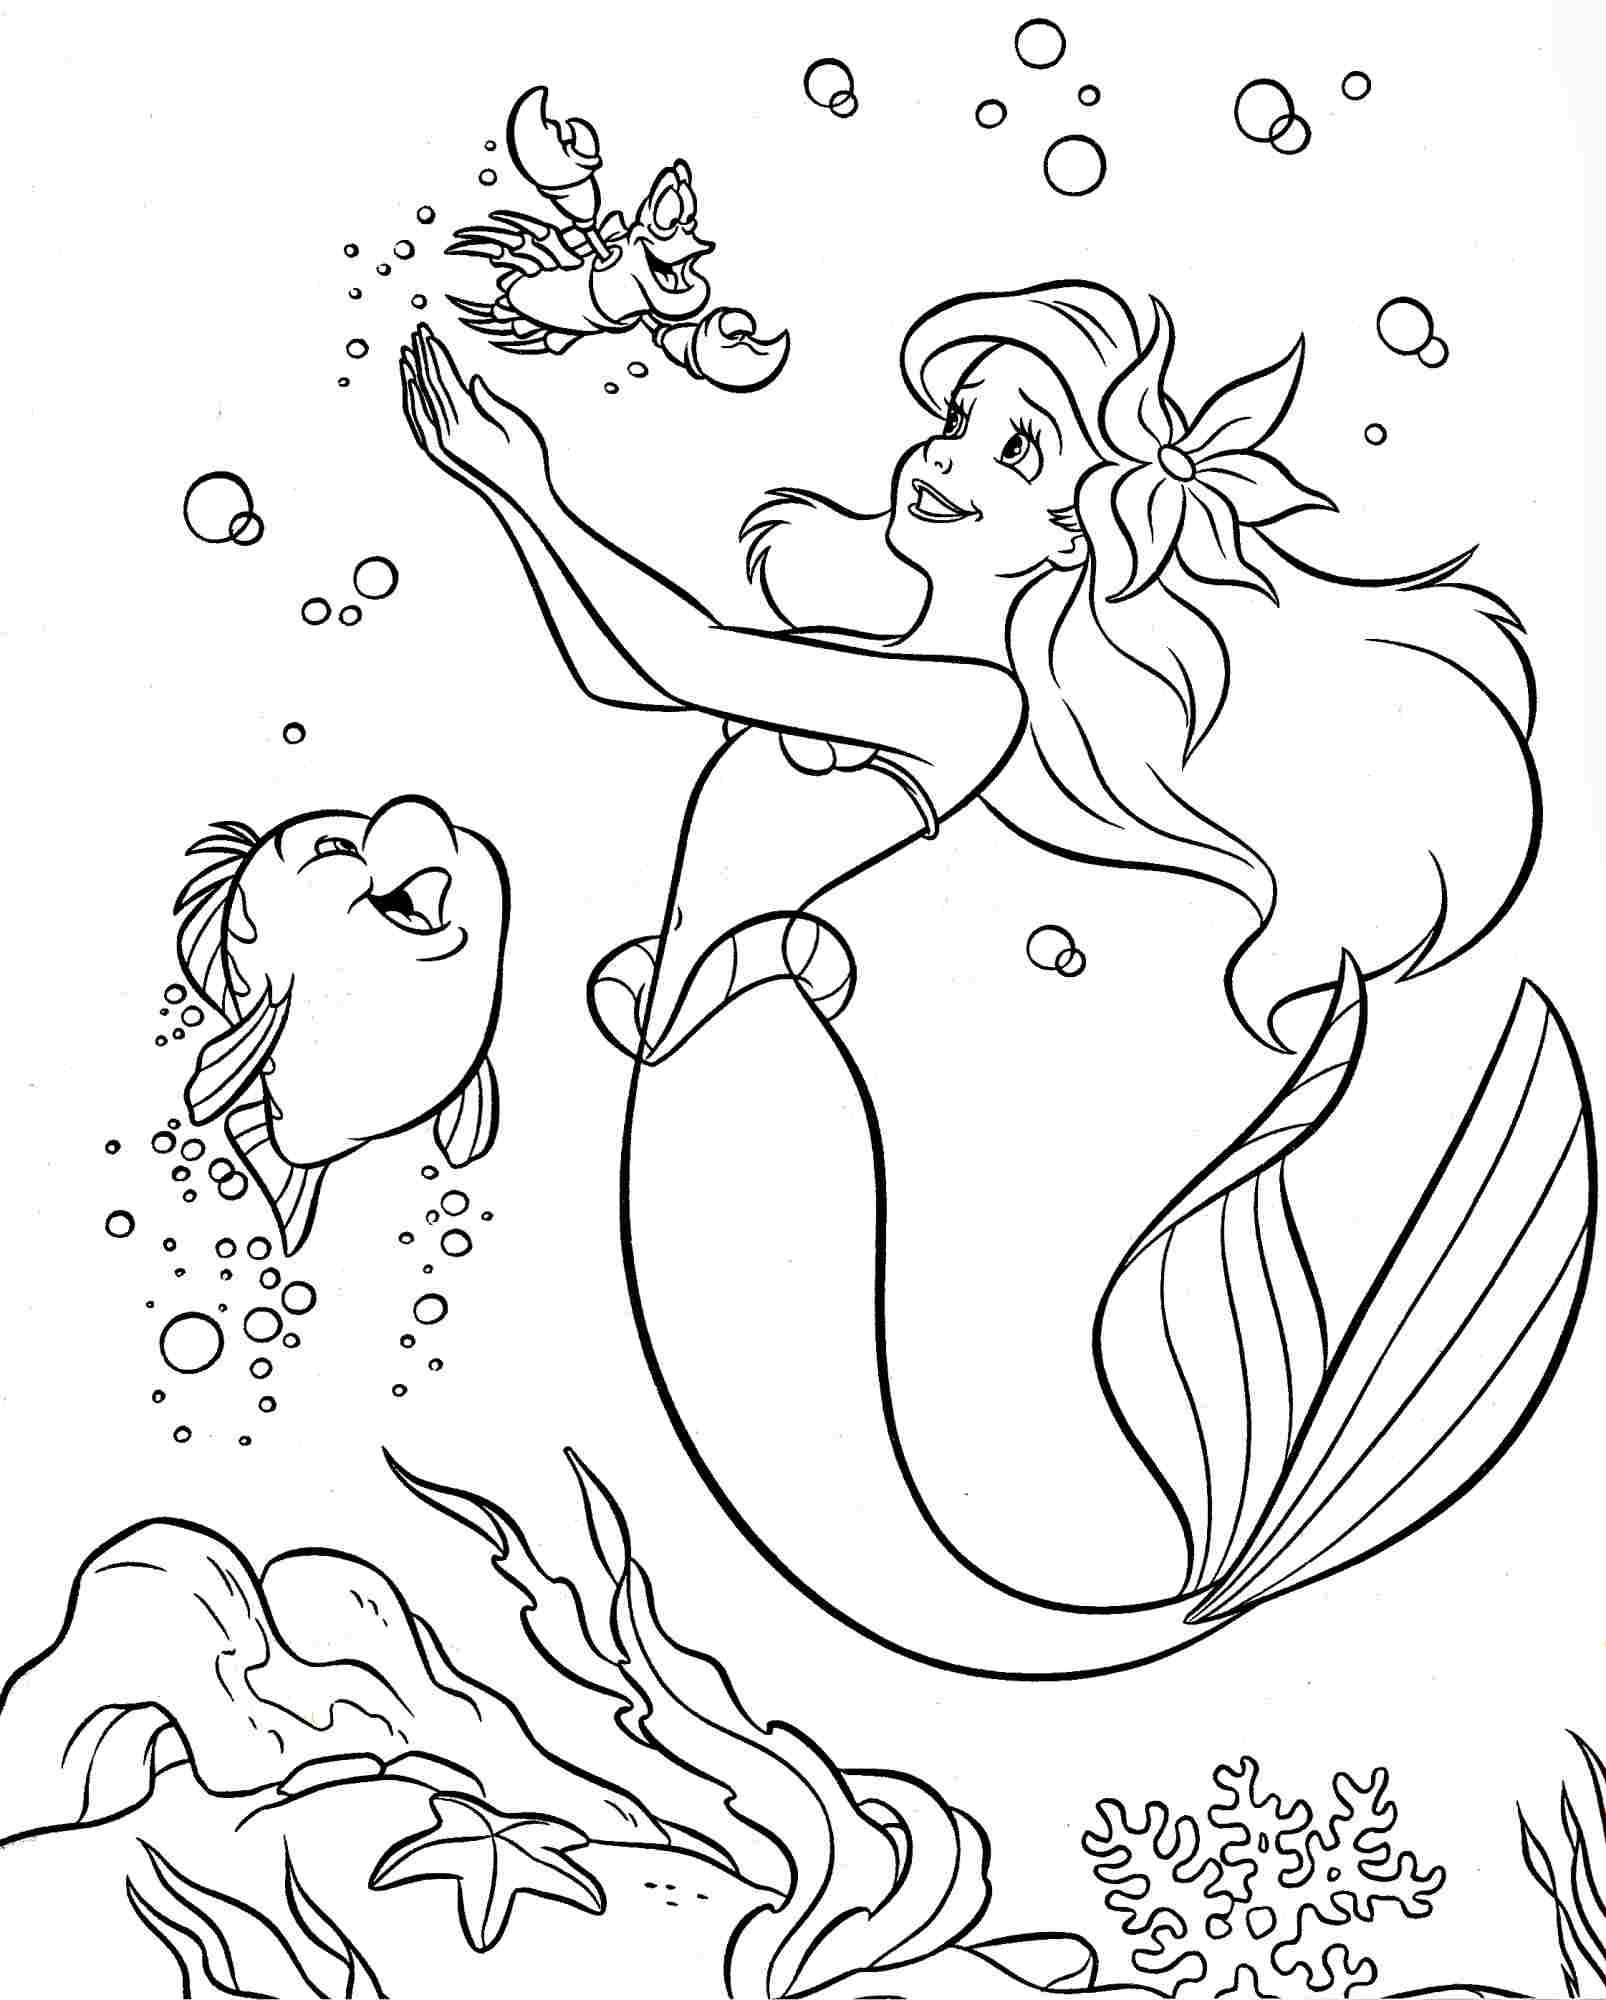 Ariel princess coloring pages free - Colouring Pages Coloring Pages Disney Princess Little Mermaid Ariel For Kids Free Printable For Kids